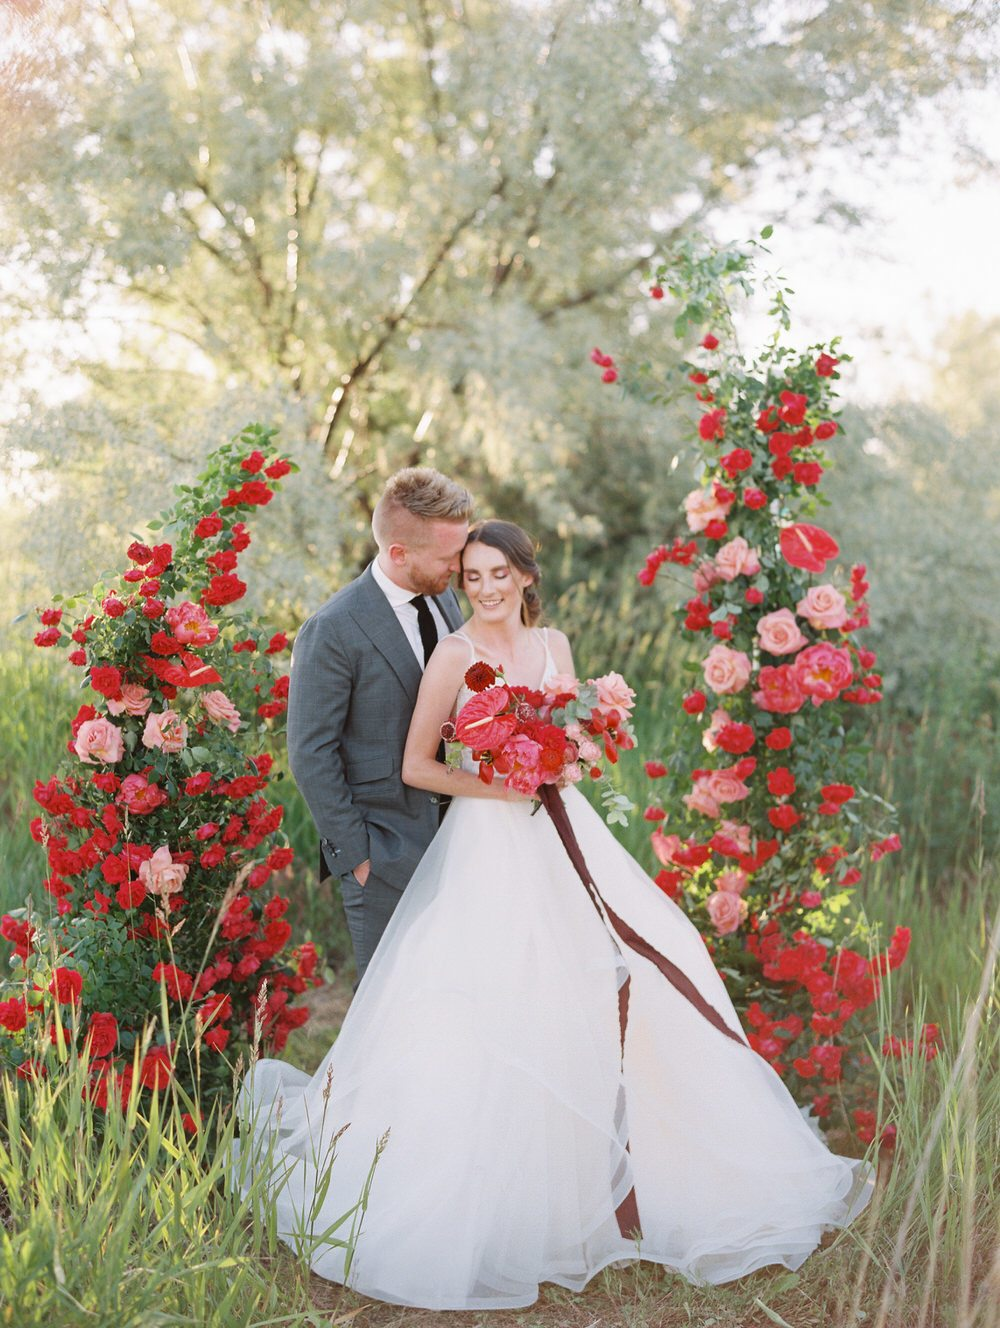 bride and groom surrounded by red roses